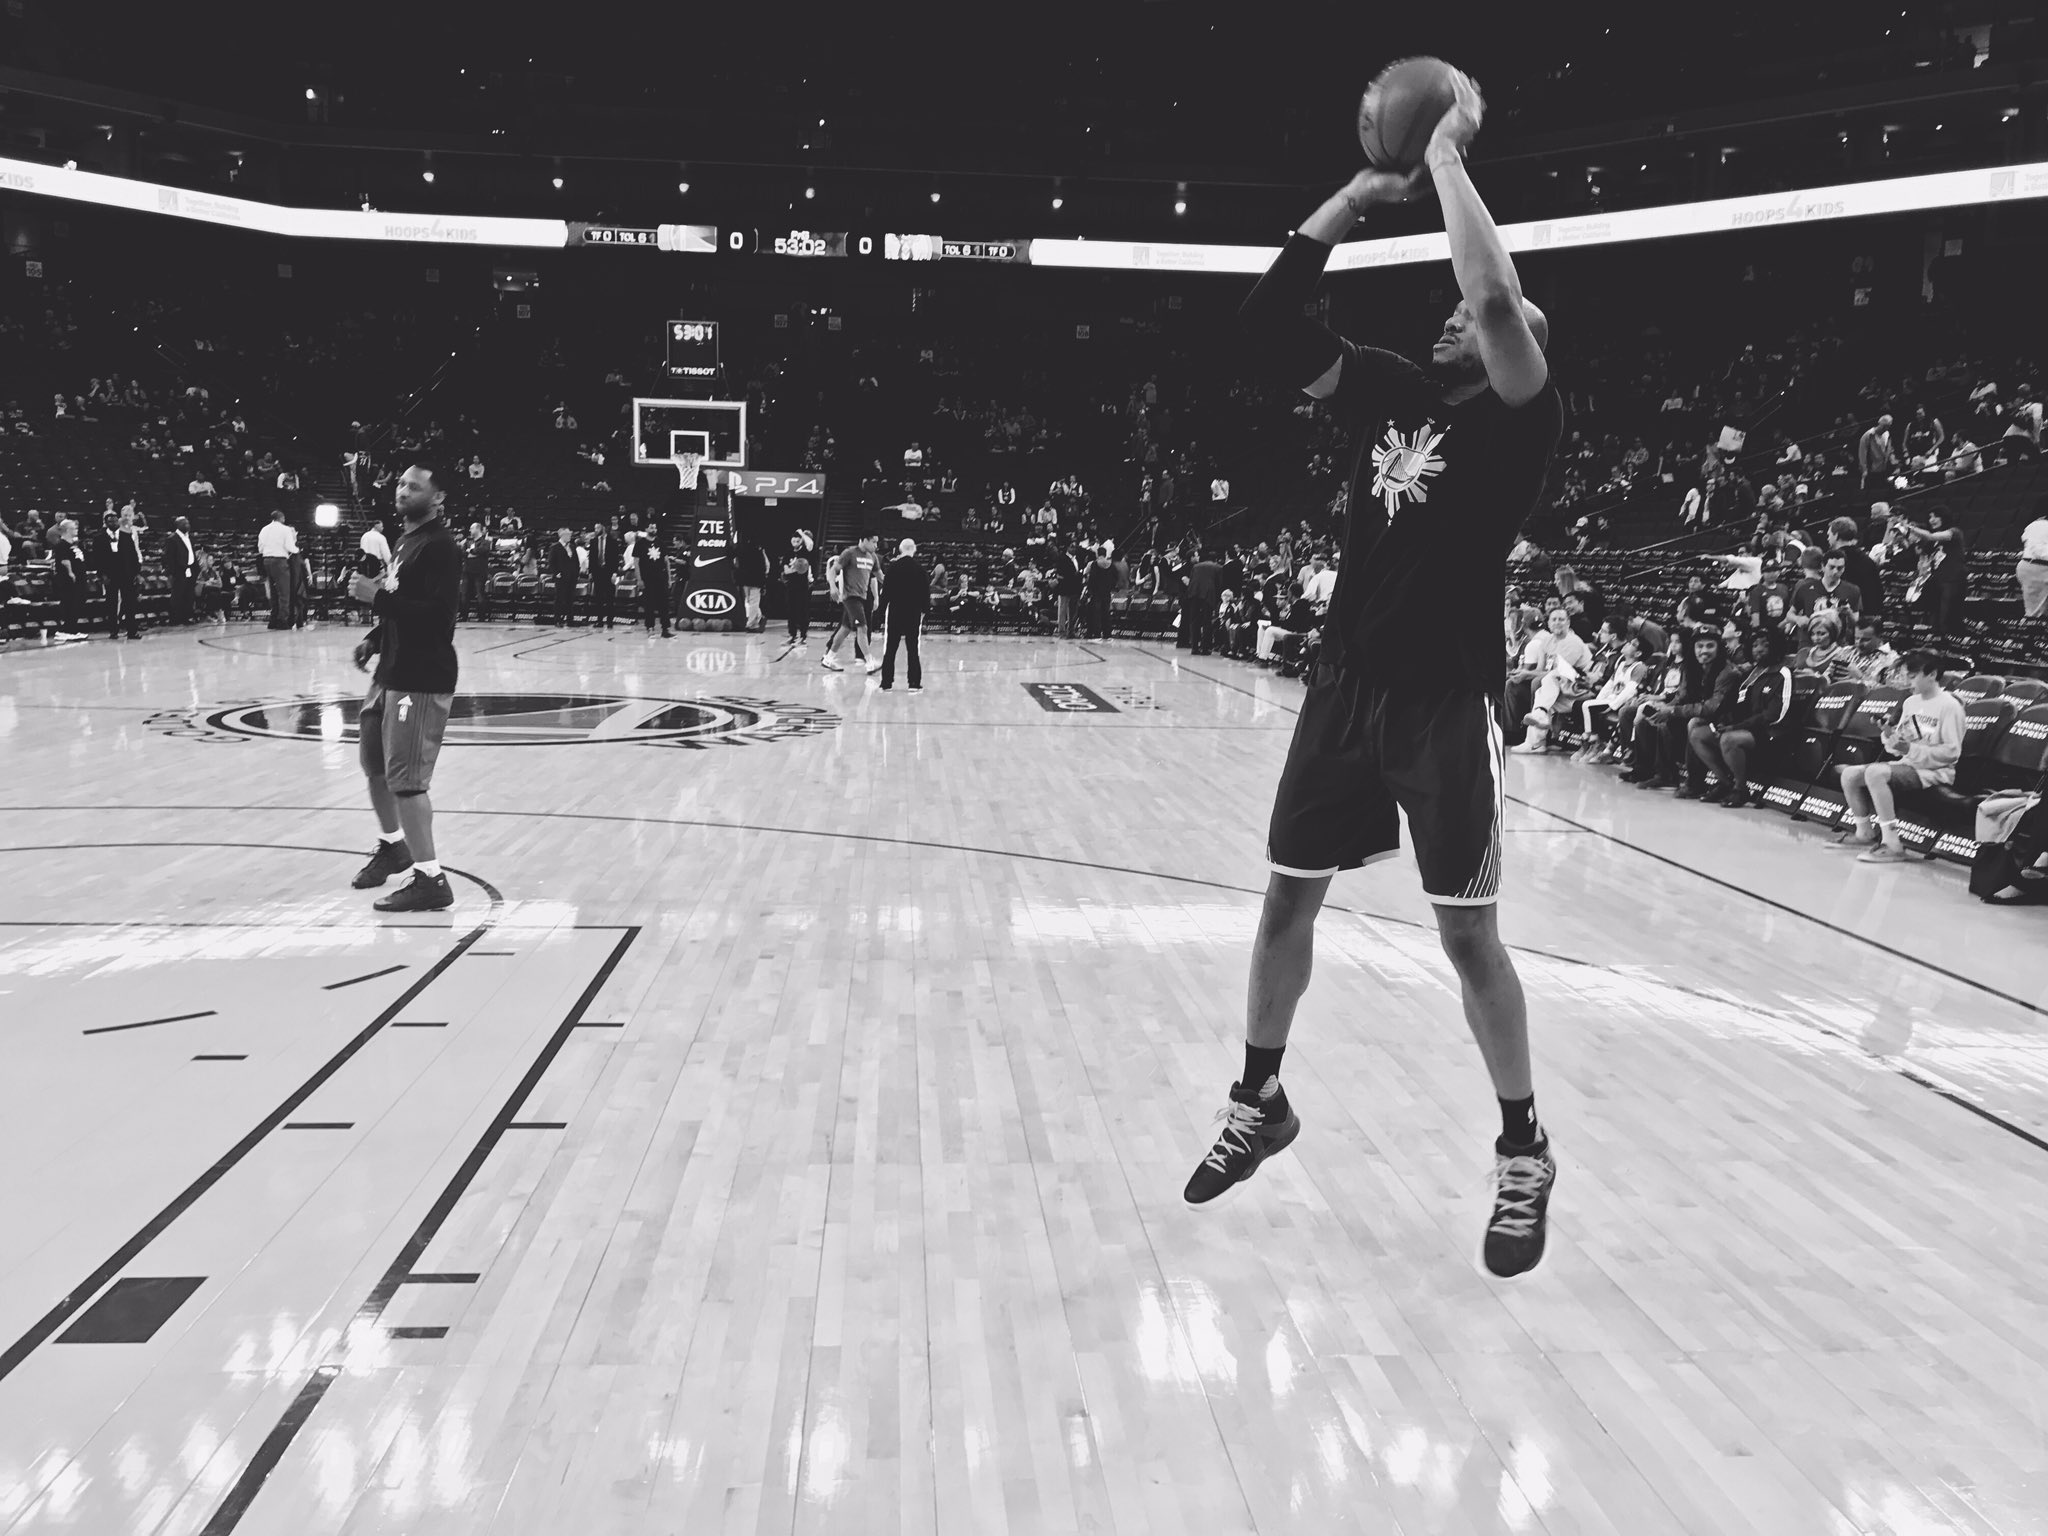 #WarriorsFHN x #SlateNight https://t.co/tsyupPS1Y3